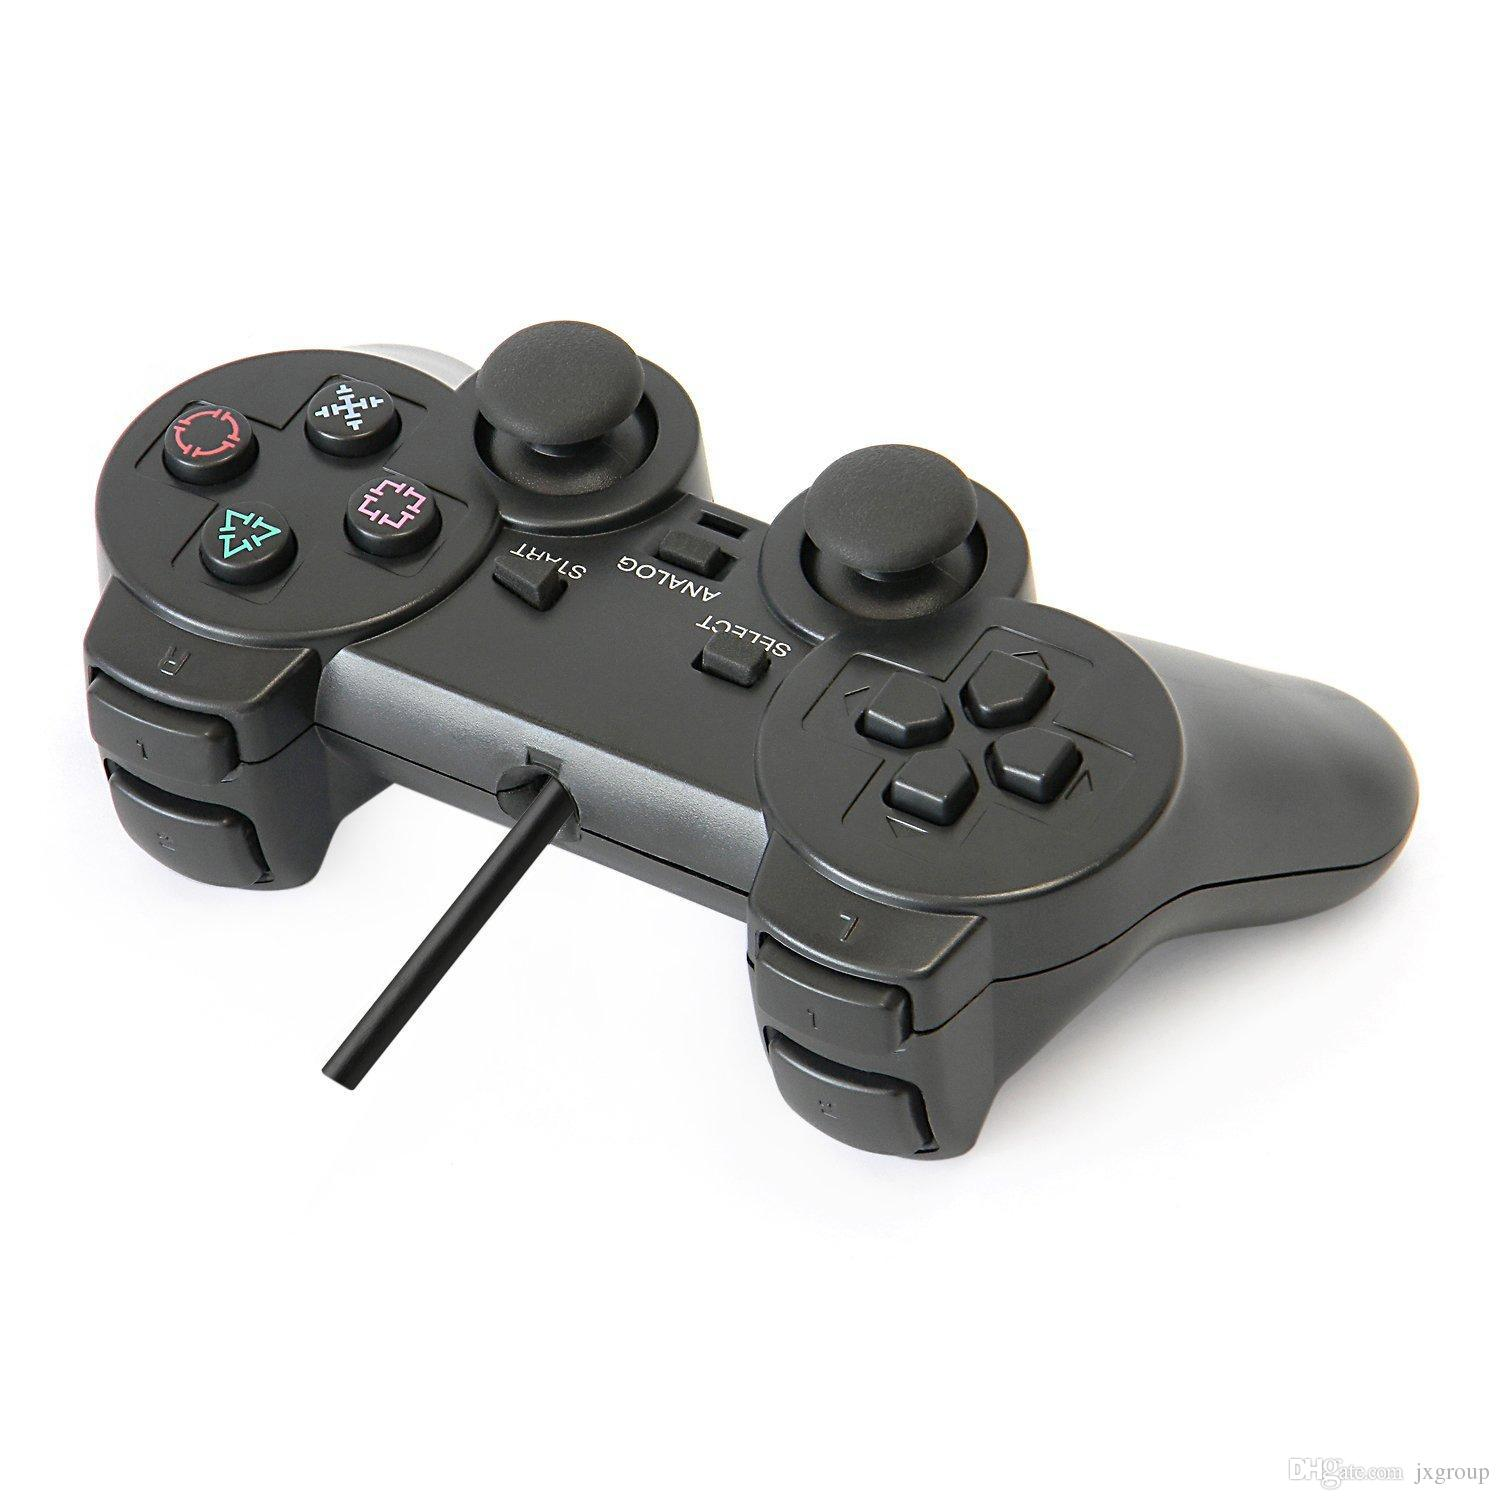 50PCS/Lot PS2 Wire Controller for Sony PlayStation 2 Black color ...